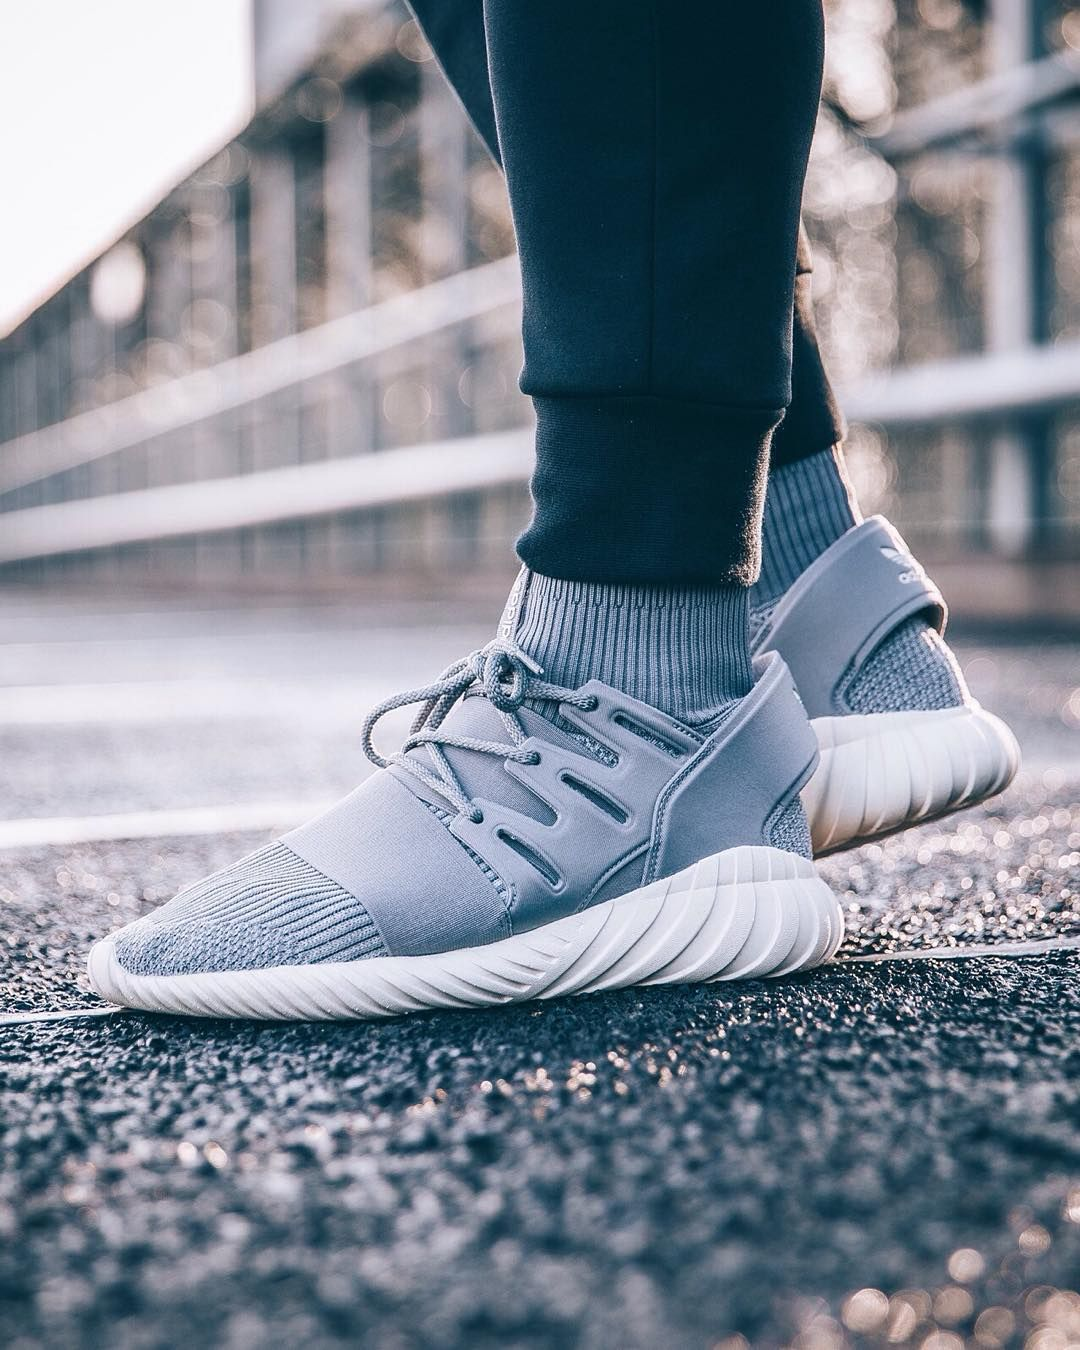 30% OFF Adidas Men Tubular Doom Primeknit legalwriting.ie